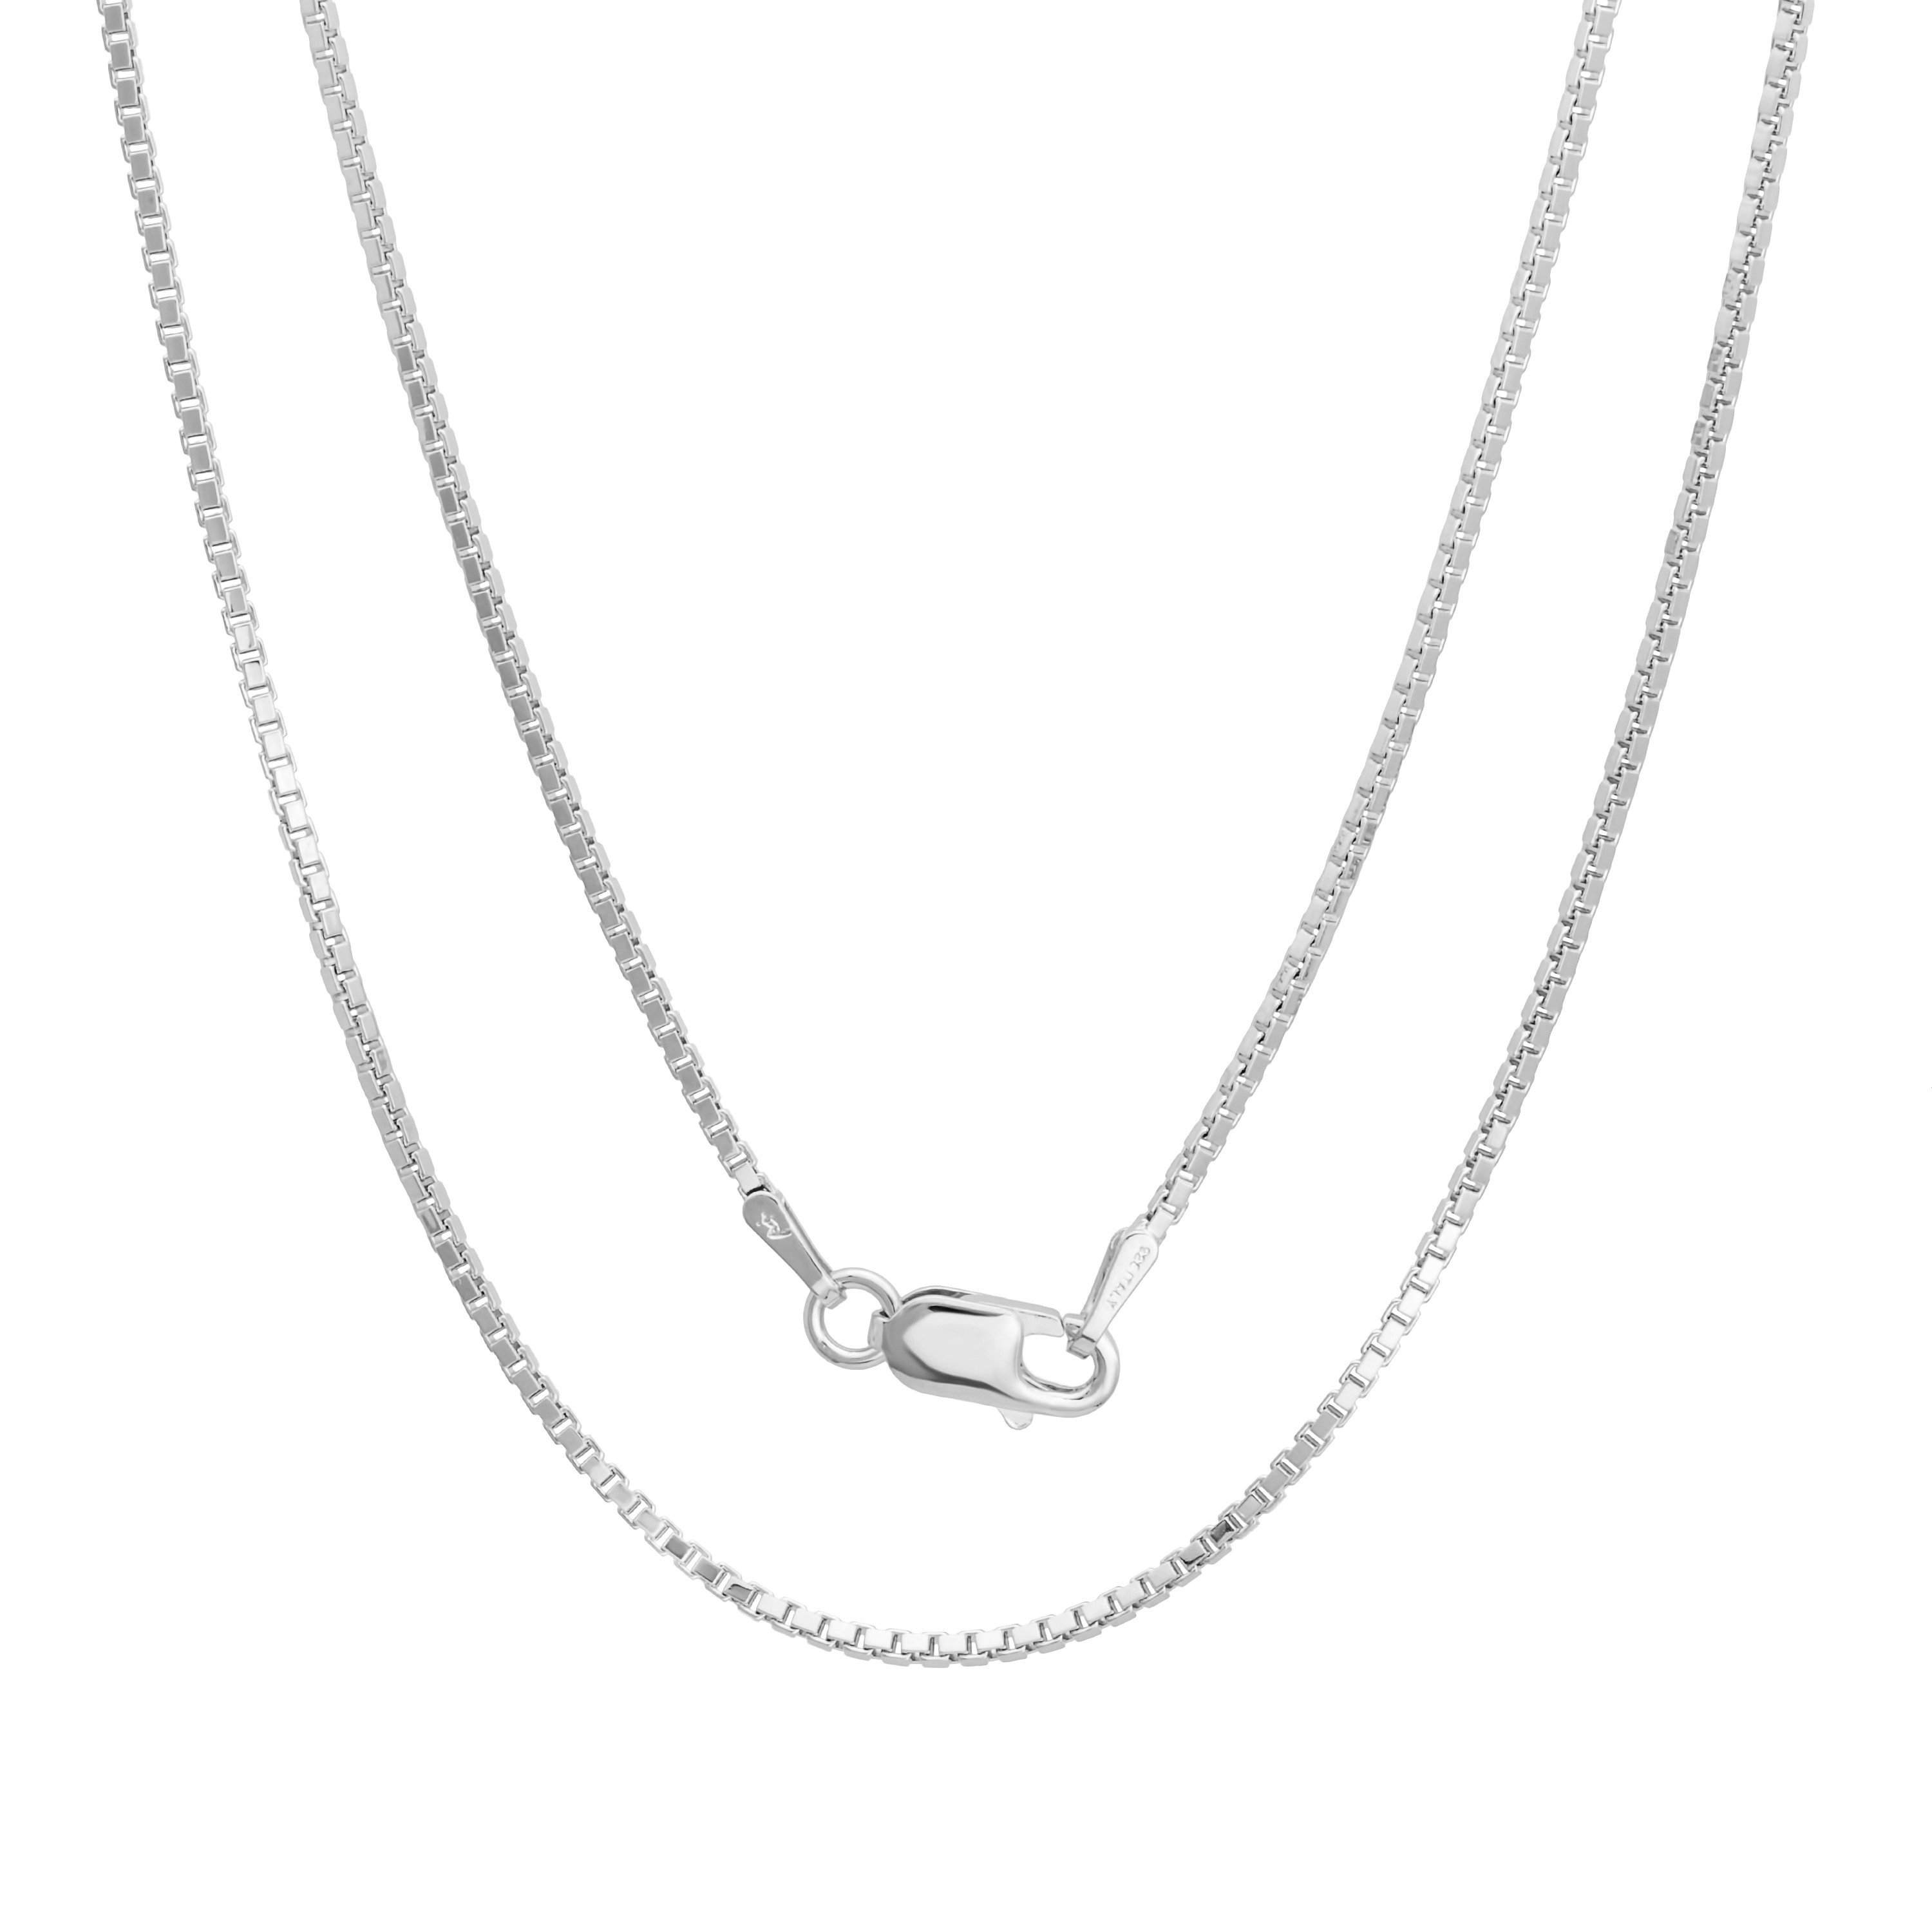 Brand New 925 Italy SOLID Sterling Silver Box Chain Necklace Different Sizes